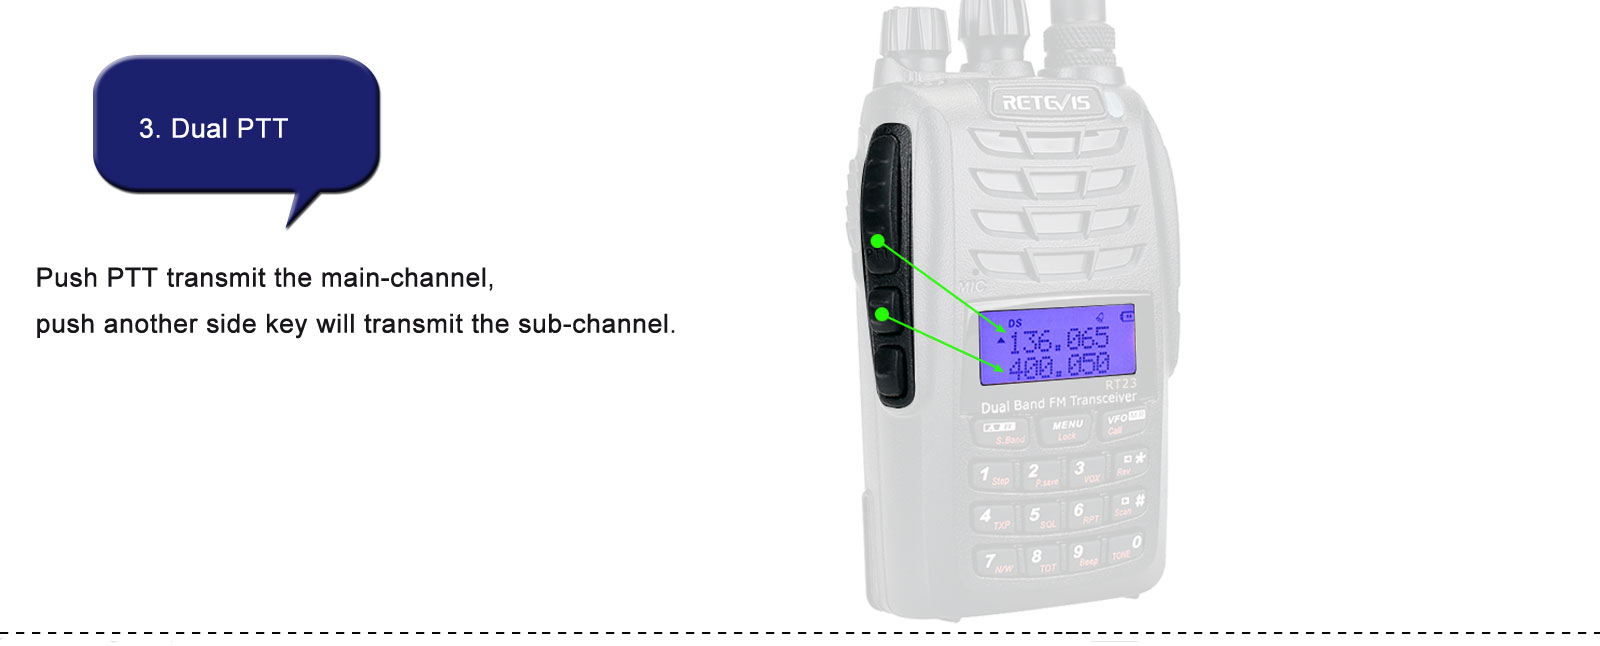 RT23 6 What make RT23 unique? Cross Band Repeater,Dual PTT, Dual Receive